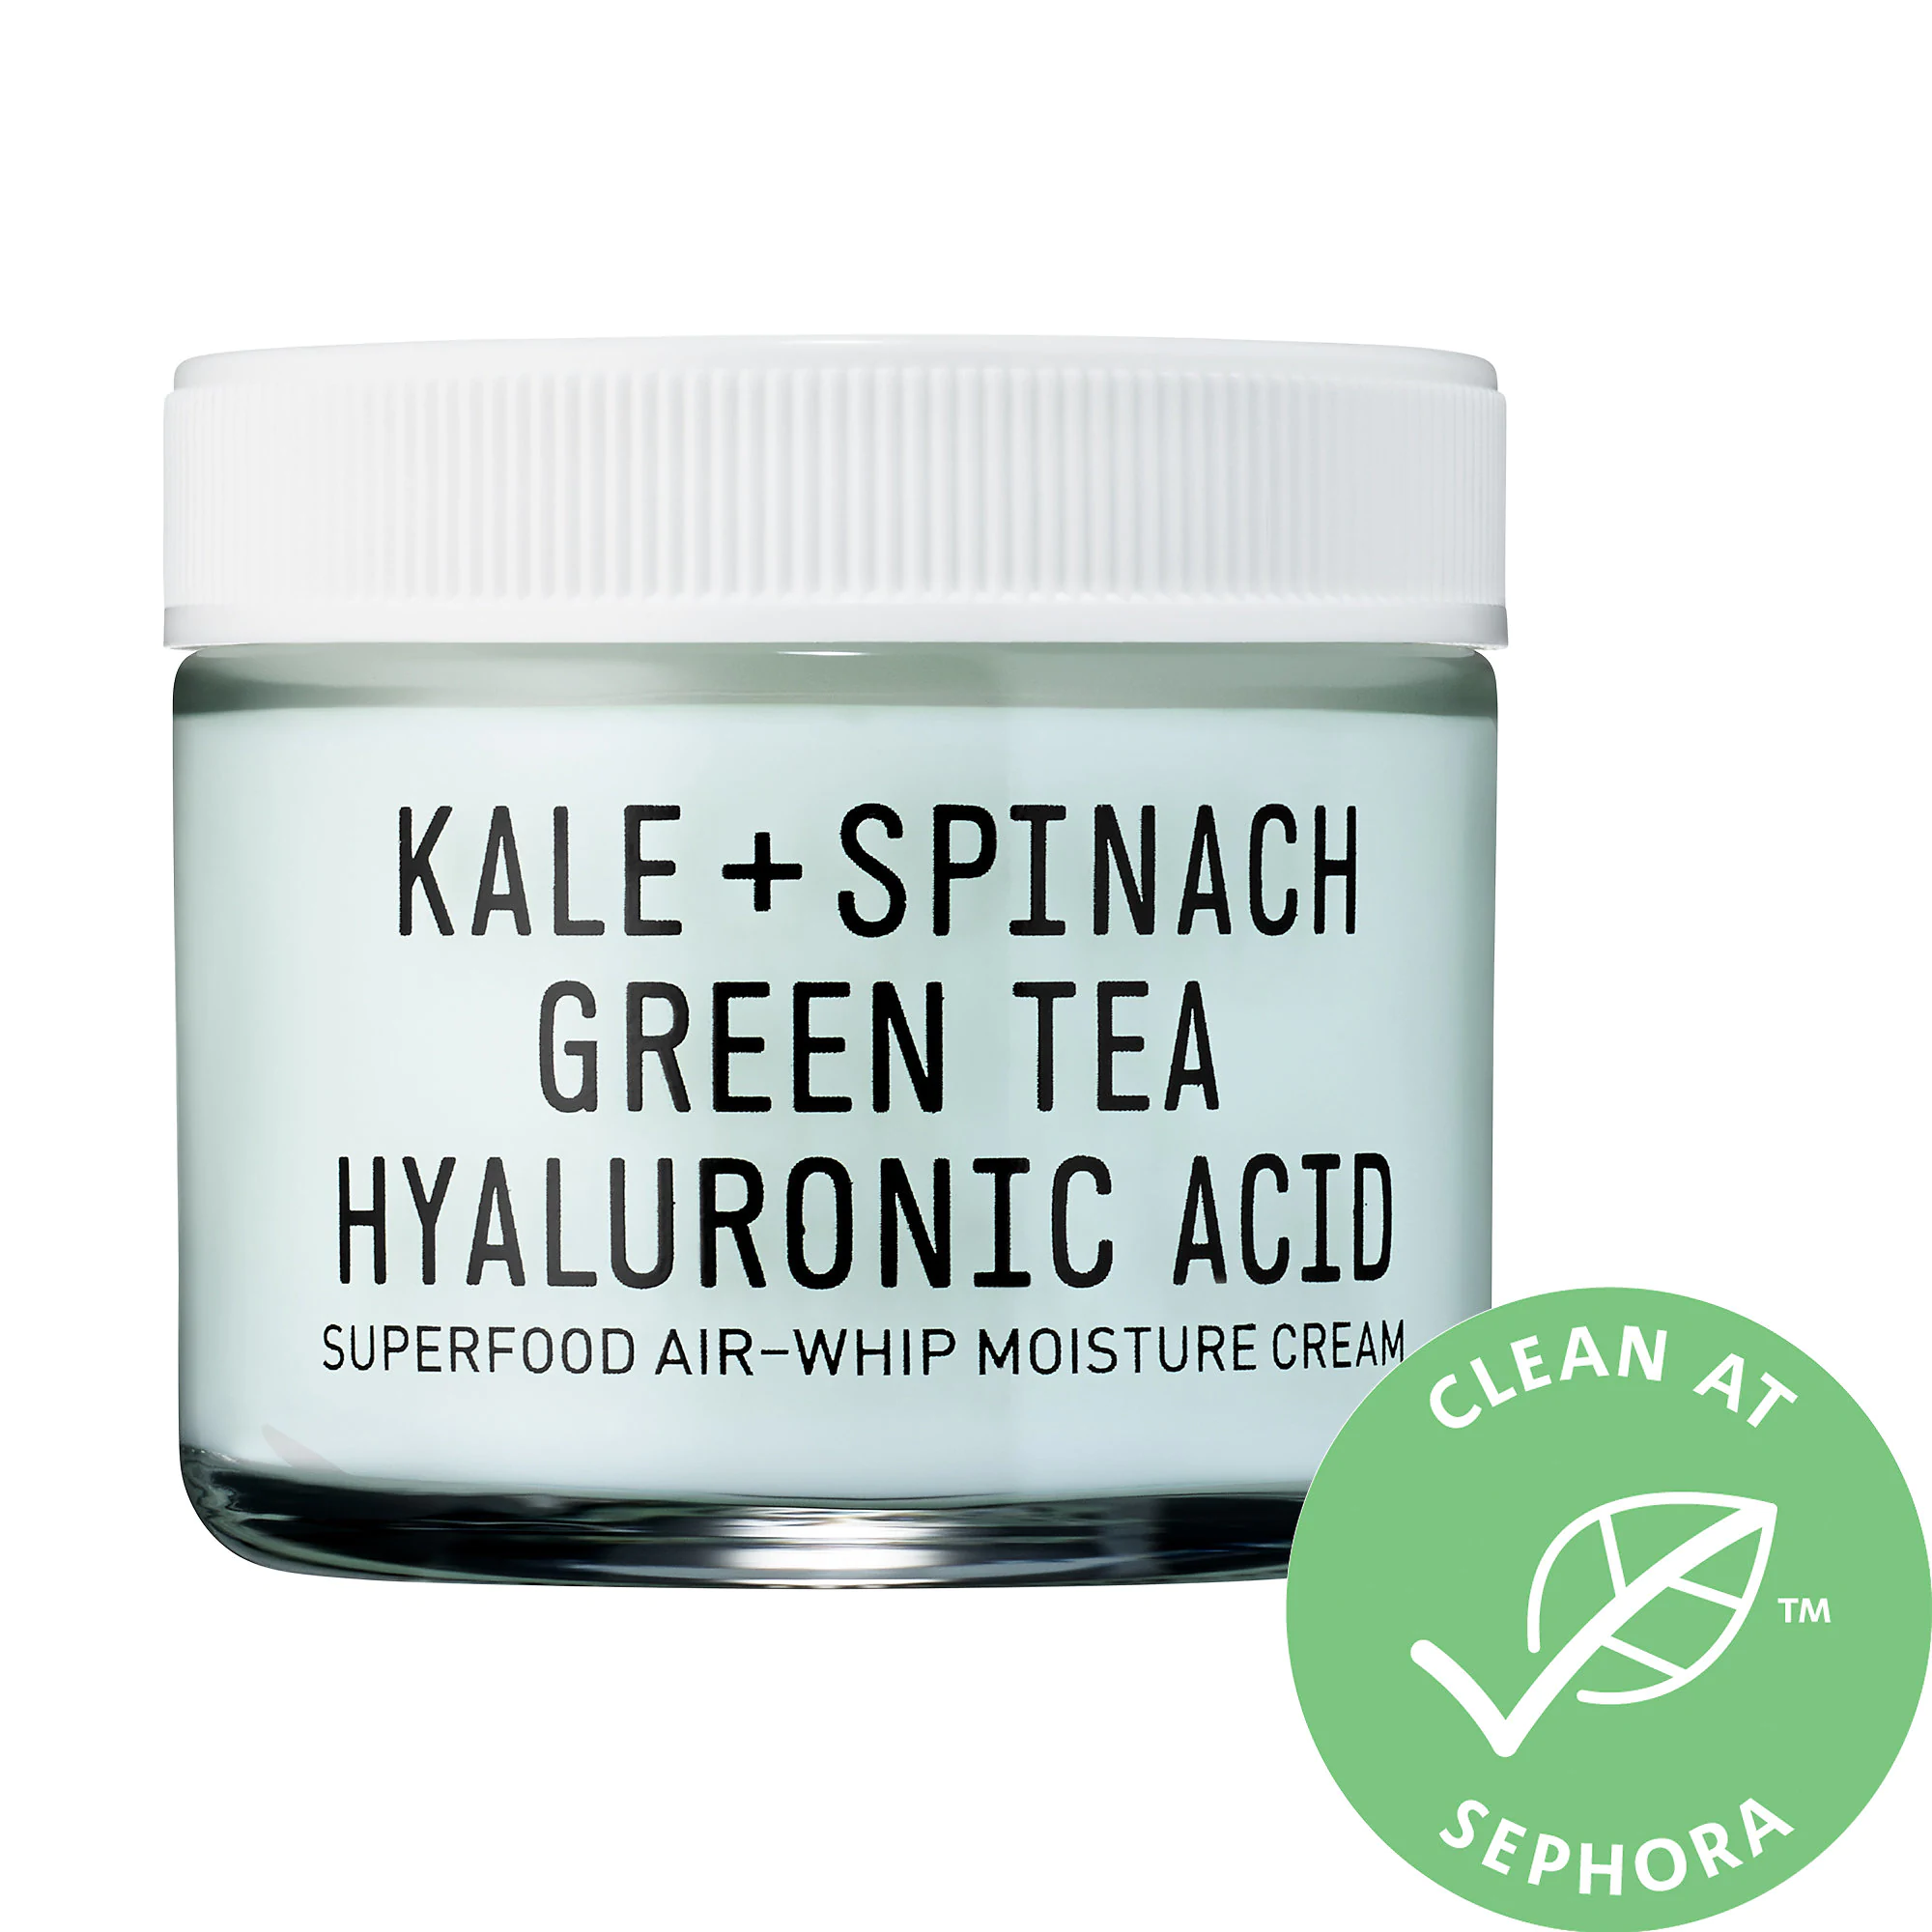 Youth To The People-Superfood Hyaluronic Acid Moisturizer